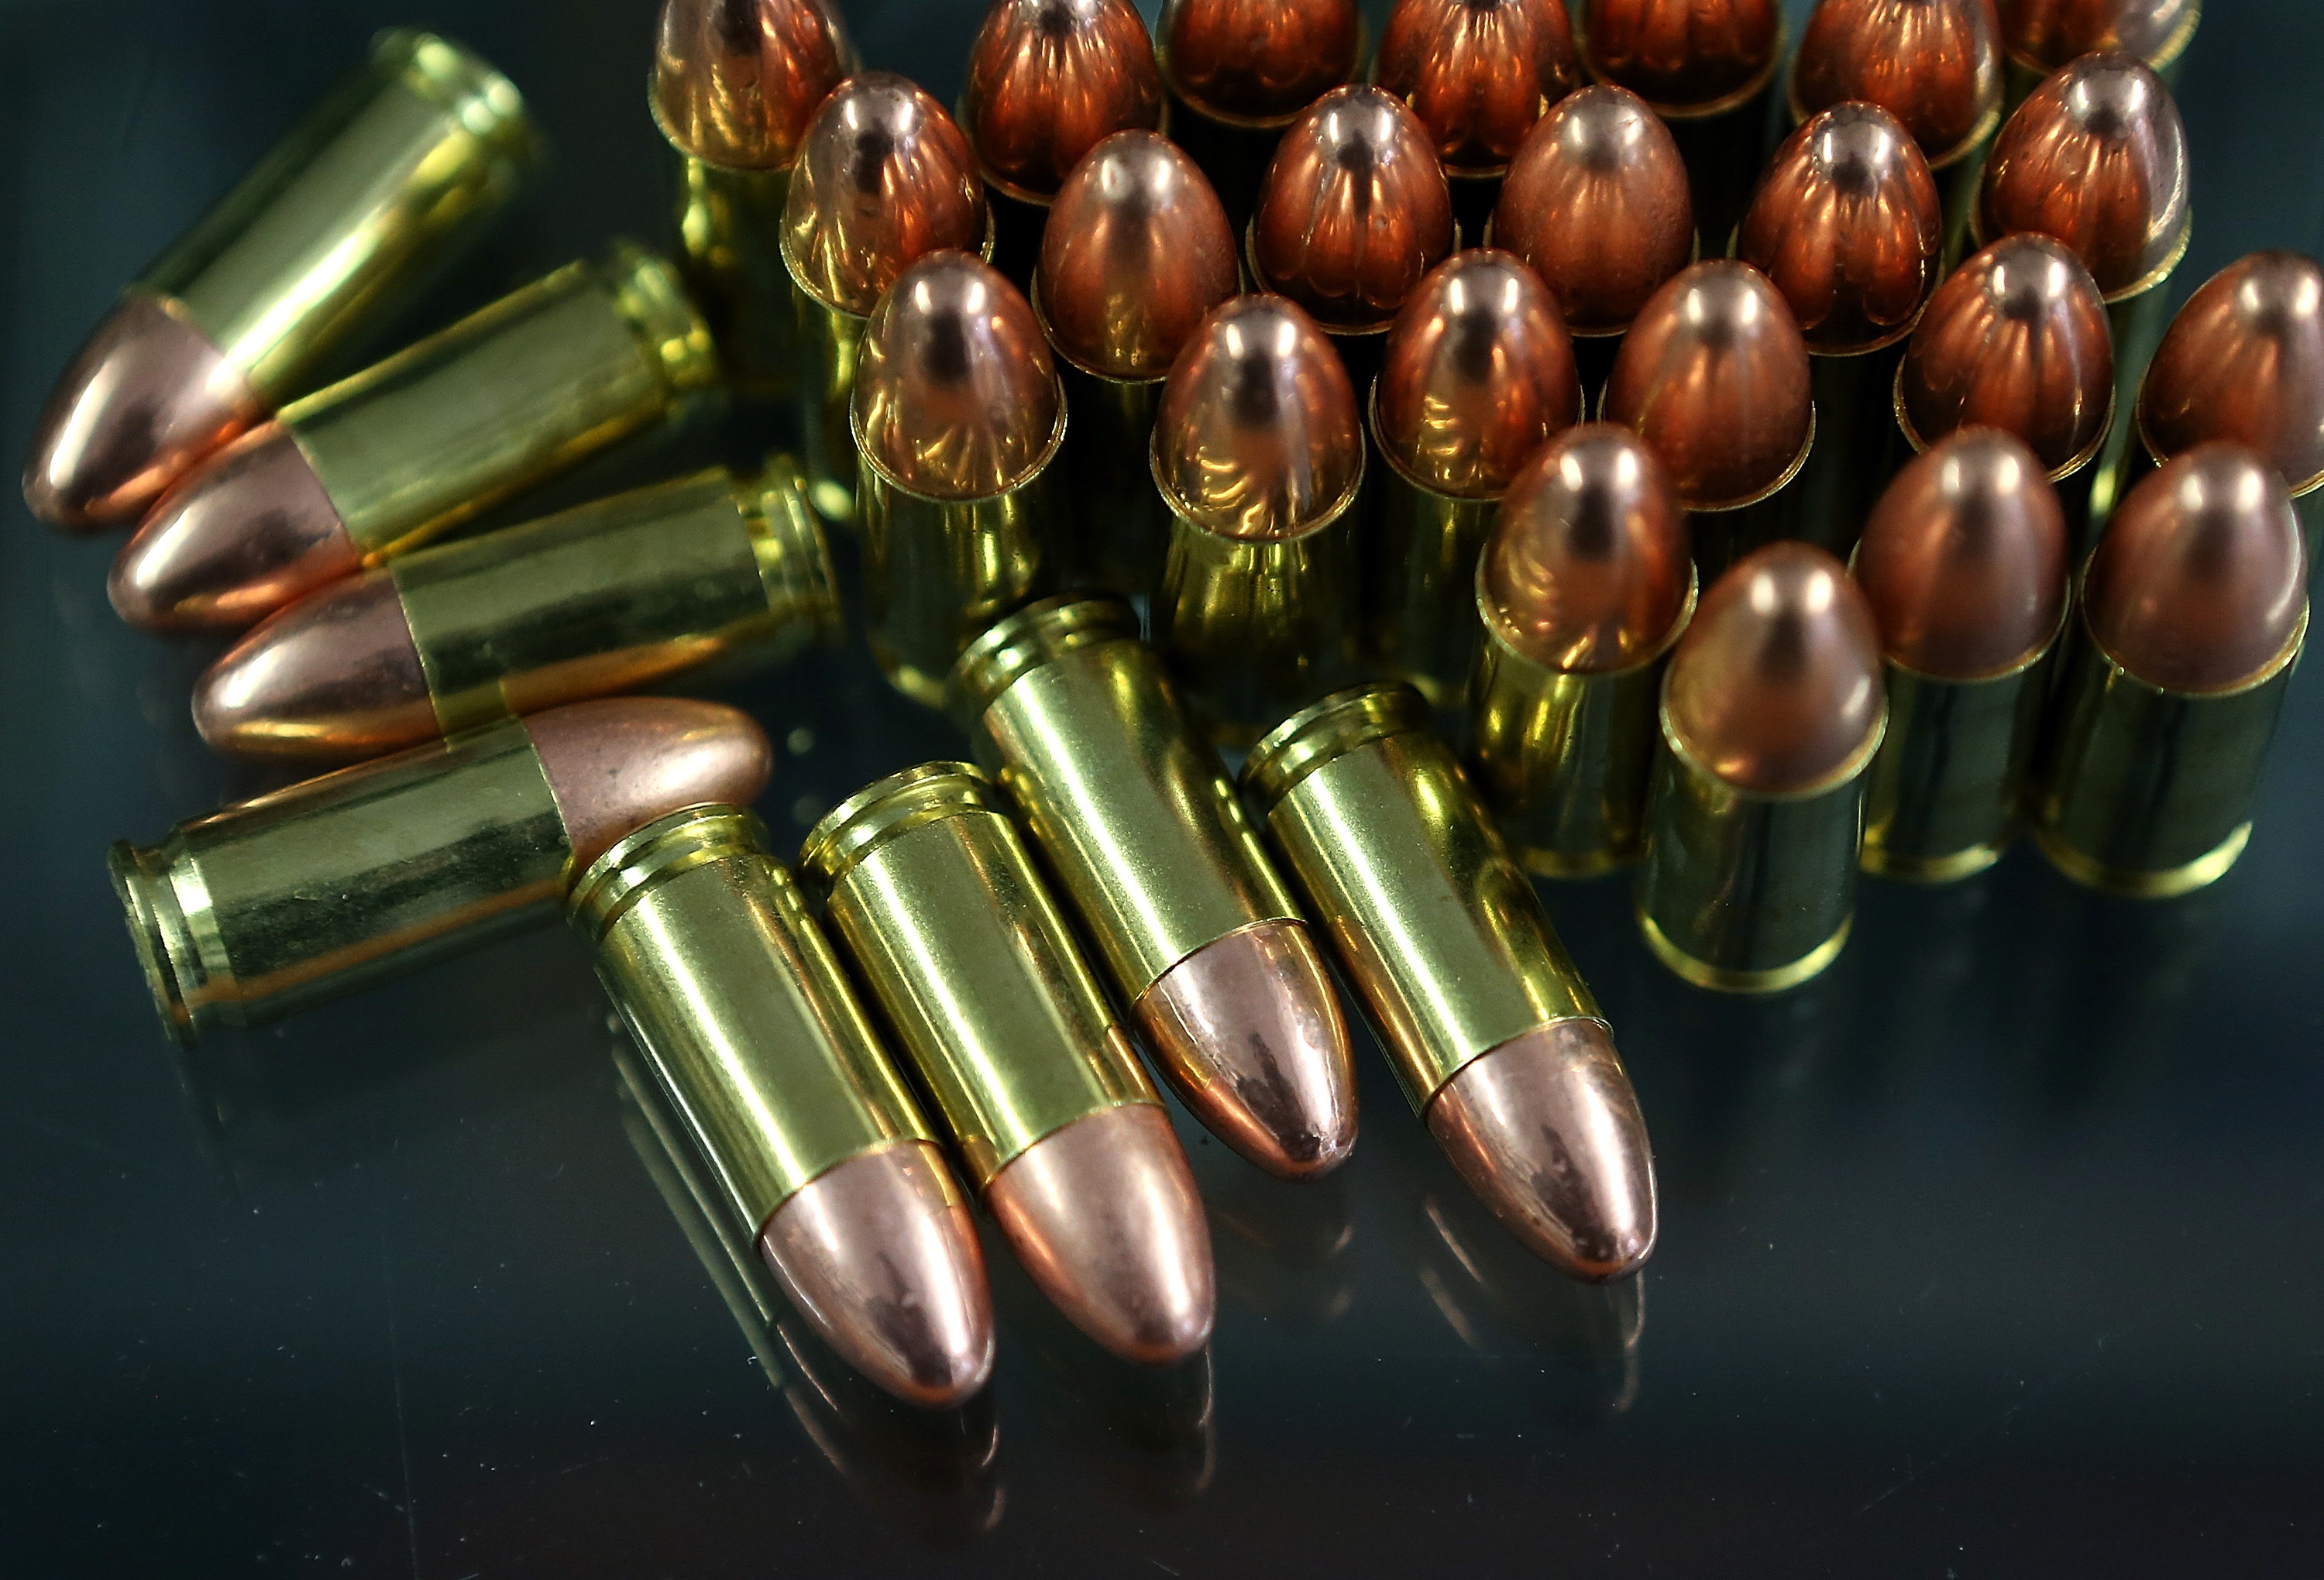 Nine millimeter bullets sit on the counter at Sportsmans Arms on April 2, 2013 in Petaluma, California.